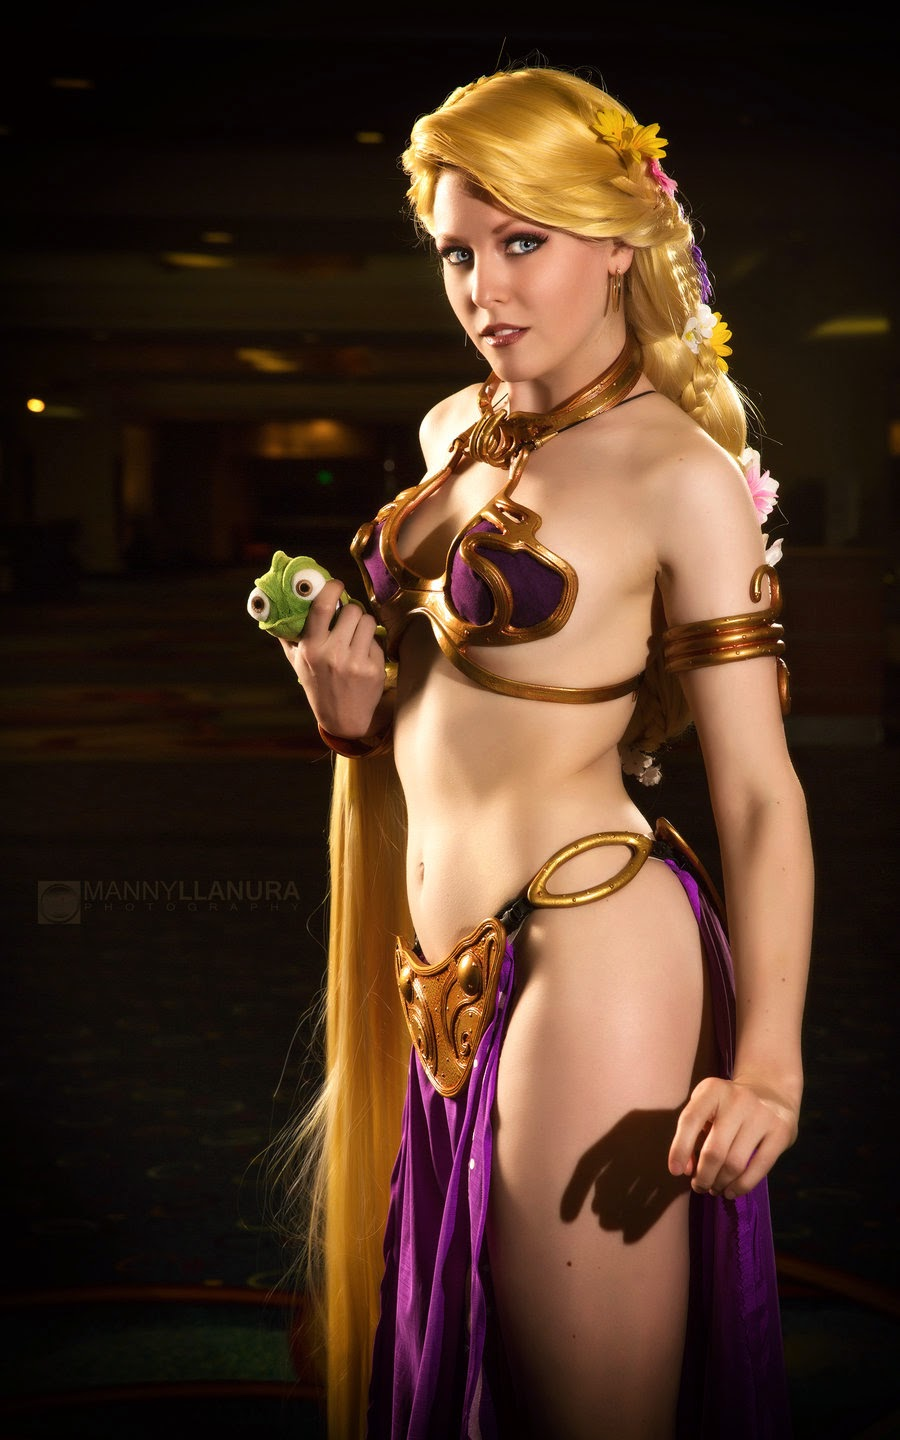 Speaking, would princess leia slave cosplay consider